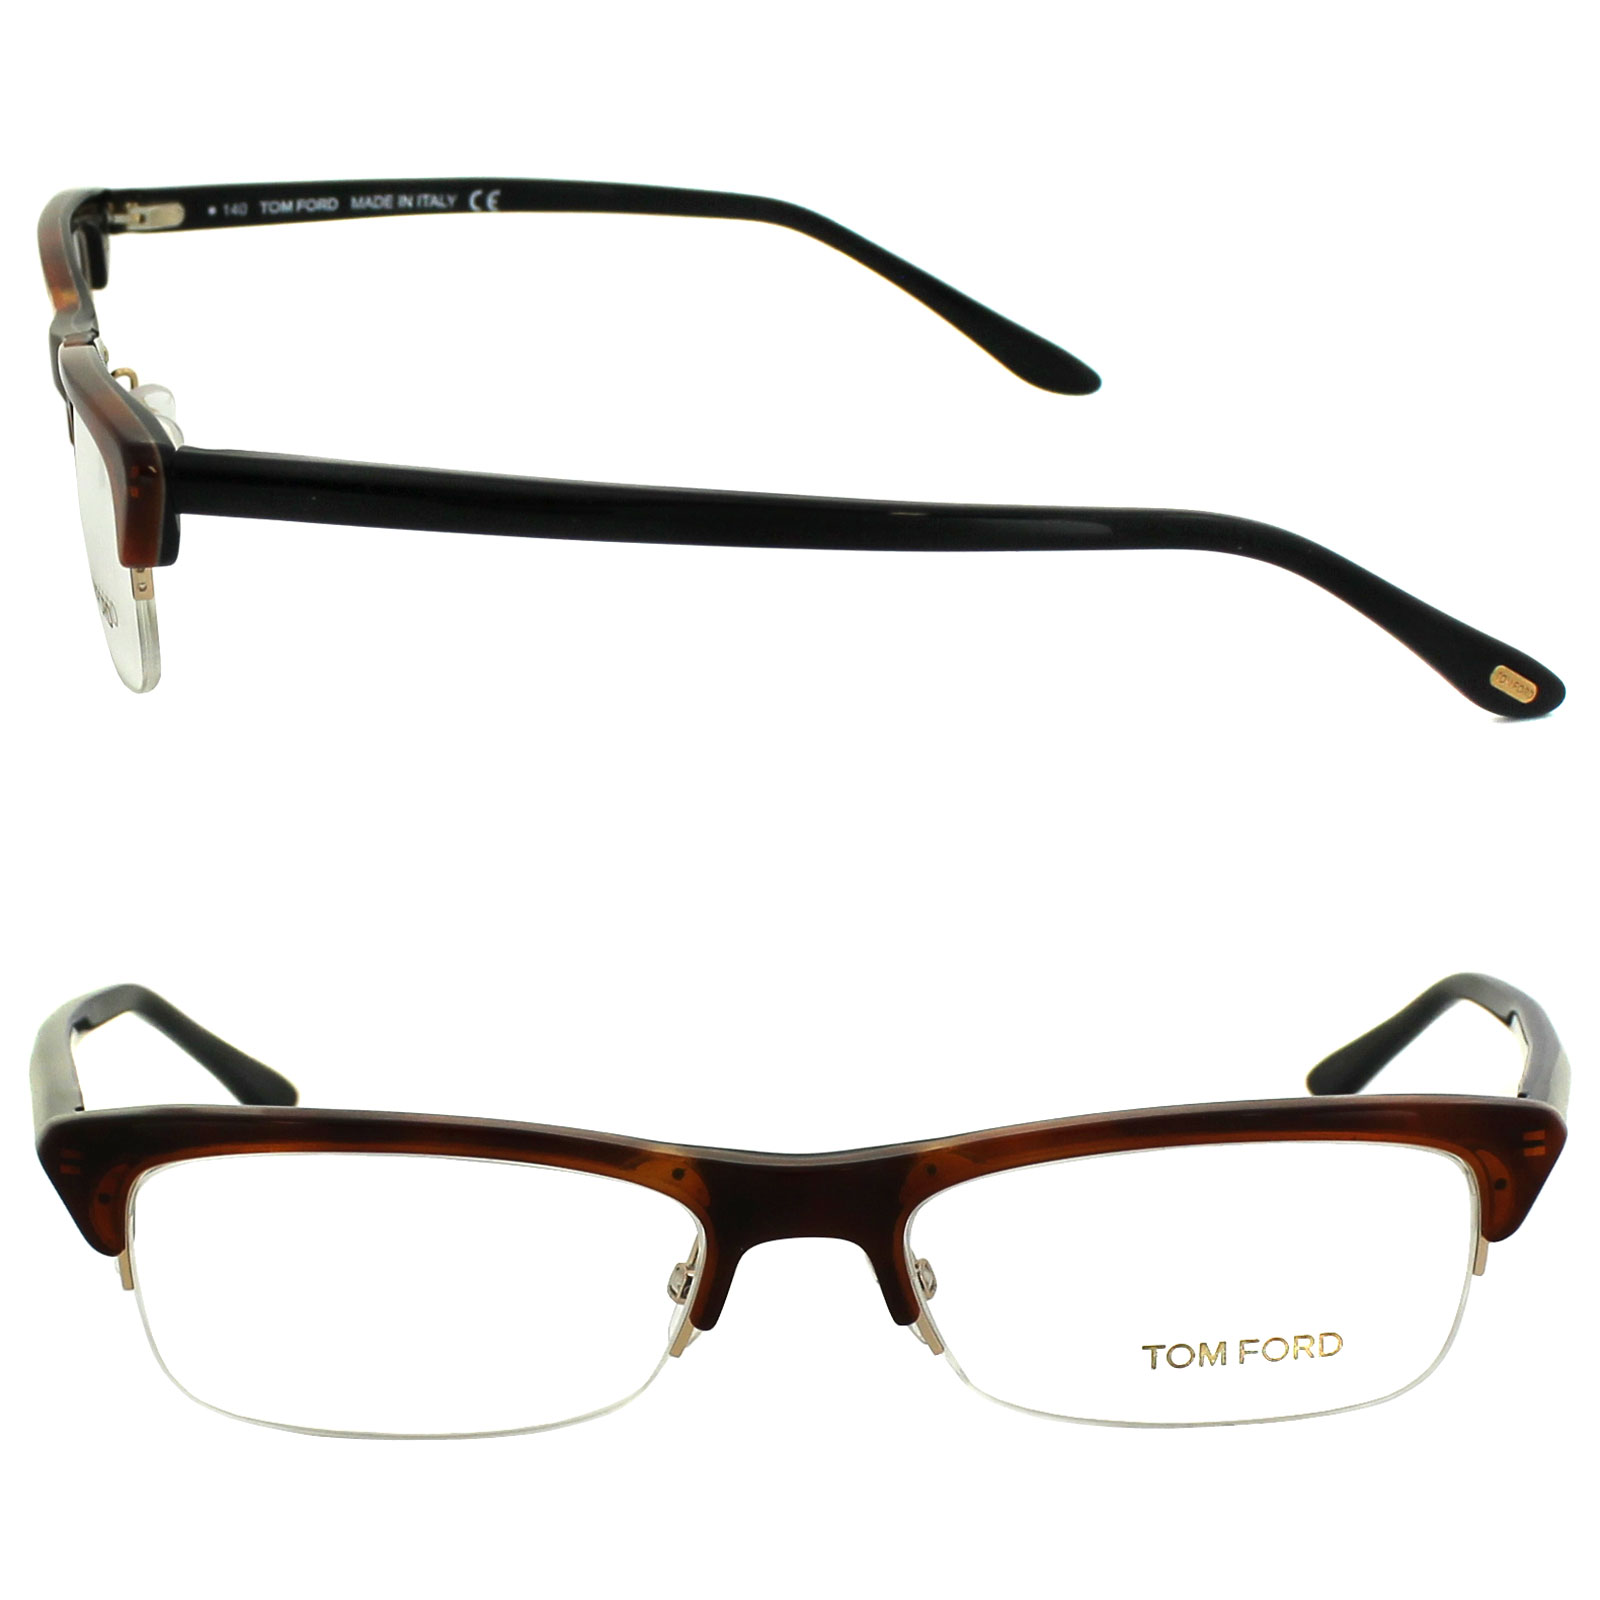 Glasses Frame Tom Ford : Cheap Tom Ford 5133 Glasses Frames - Discounted Sunglasses